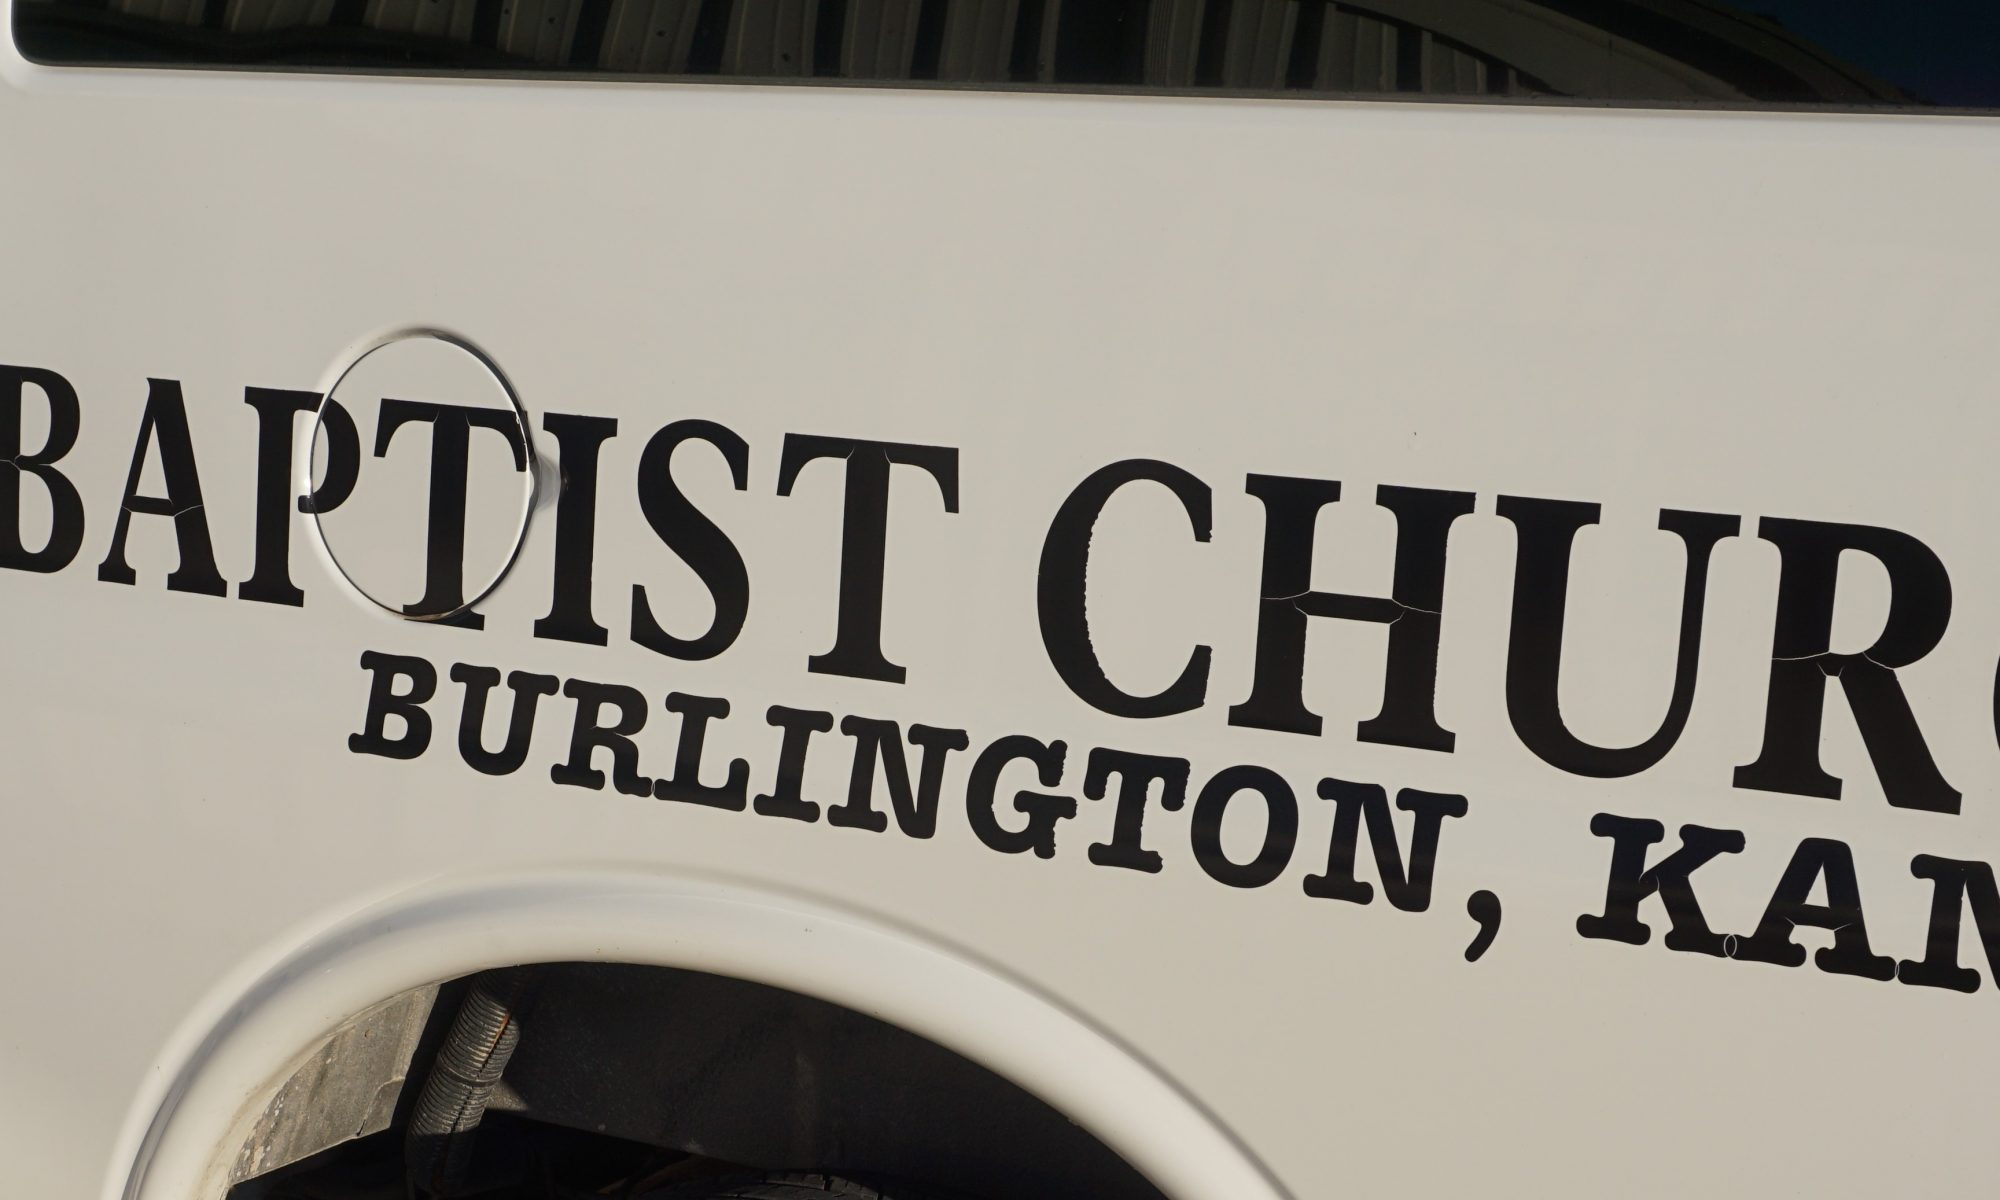 Our Name on Our Van